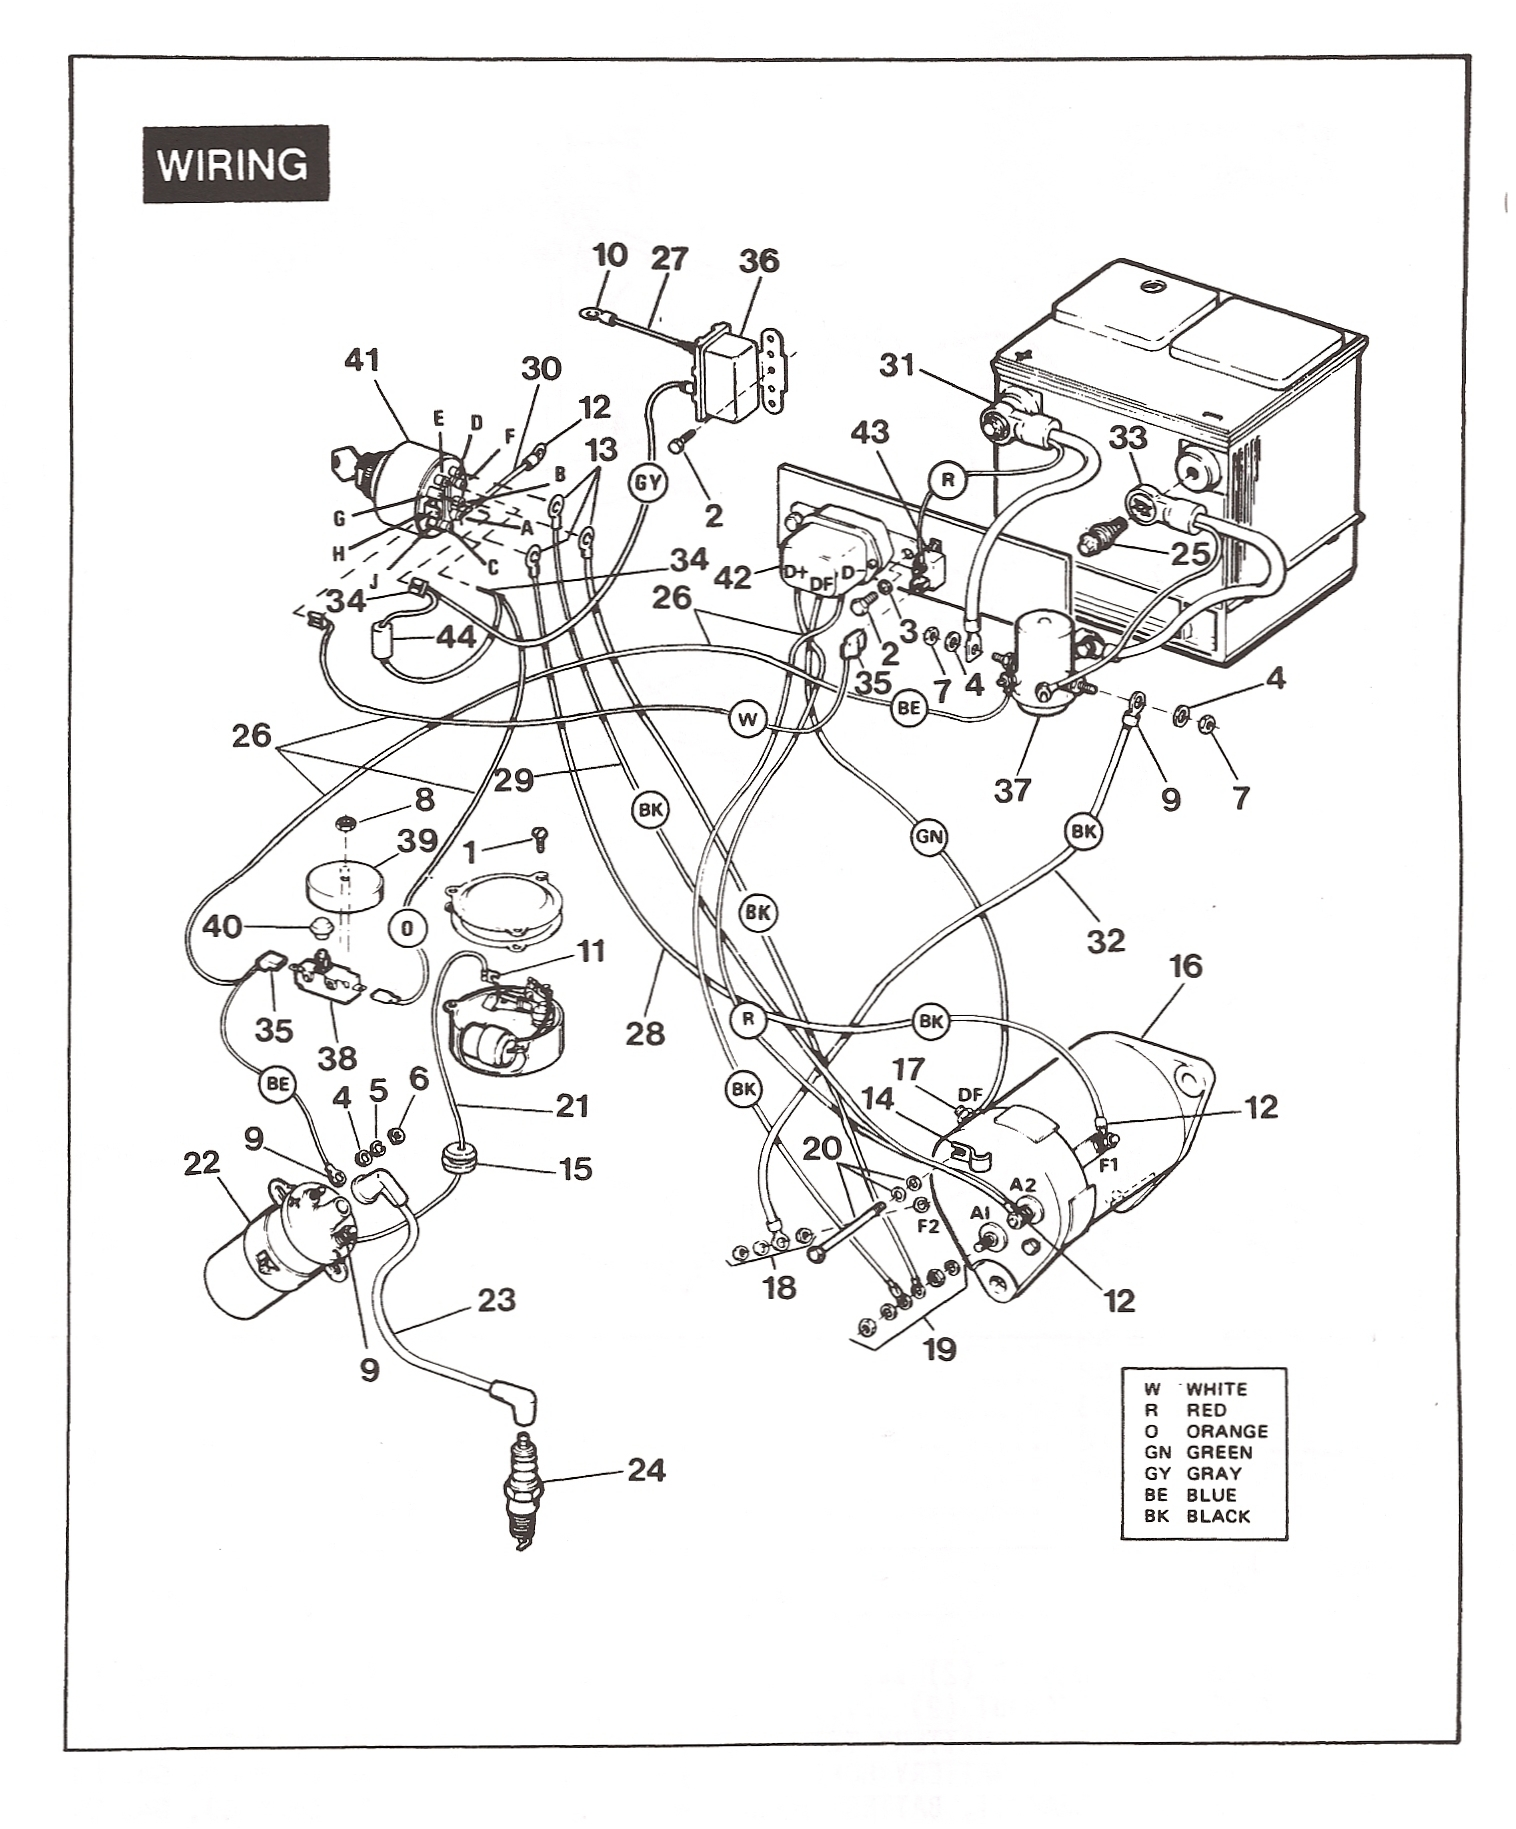 columbia parcar wiring diagram pdf with Gallery on 4laqj 86 Club Car Ordered New 36 Volt Solenoid When together with 86 Club Car Forward Reverse Wiring Diagram furthermore Gallery besides